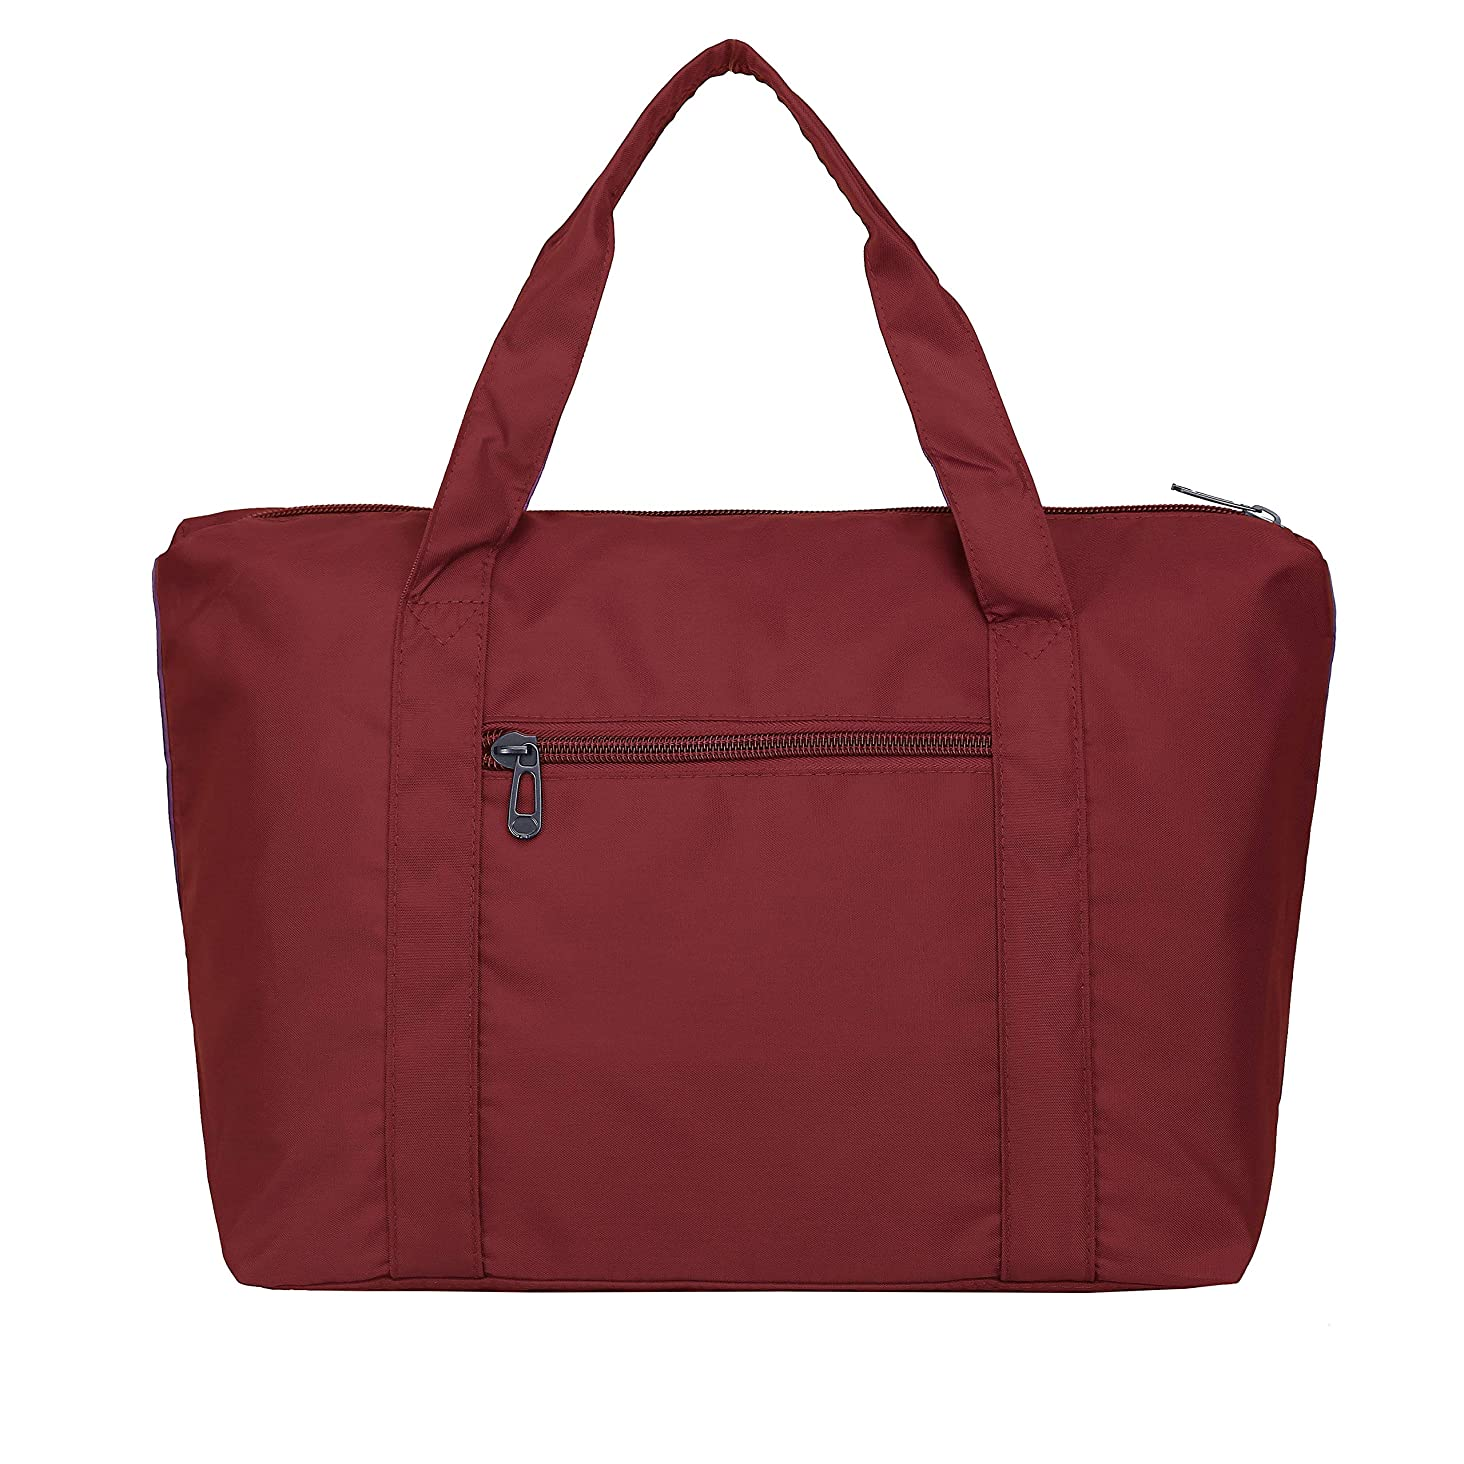 Large Foldable Travel Duffel Bag, Waterproof Soft Oxford Nylon Lightweight Carry-on Tote Duffel in Trolley Handle